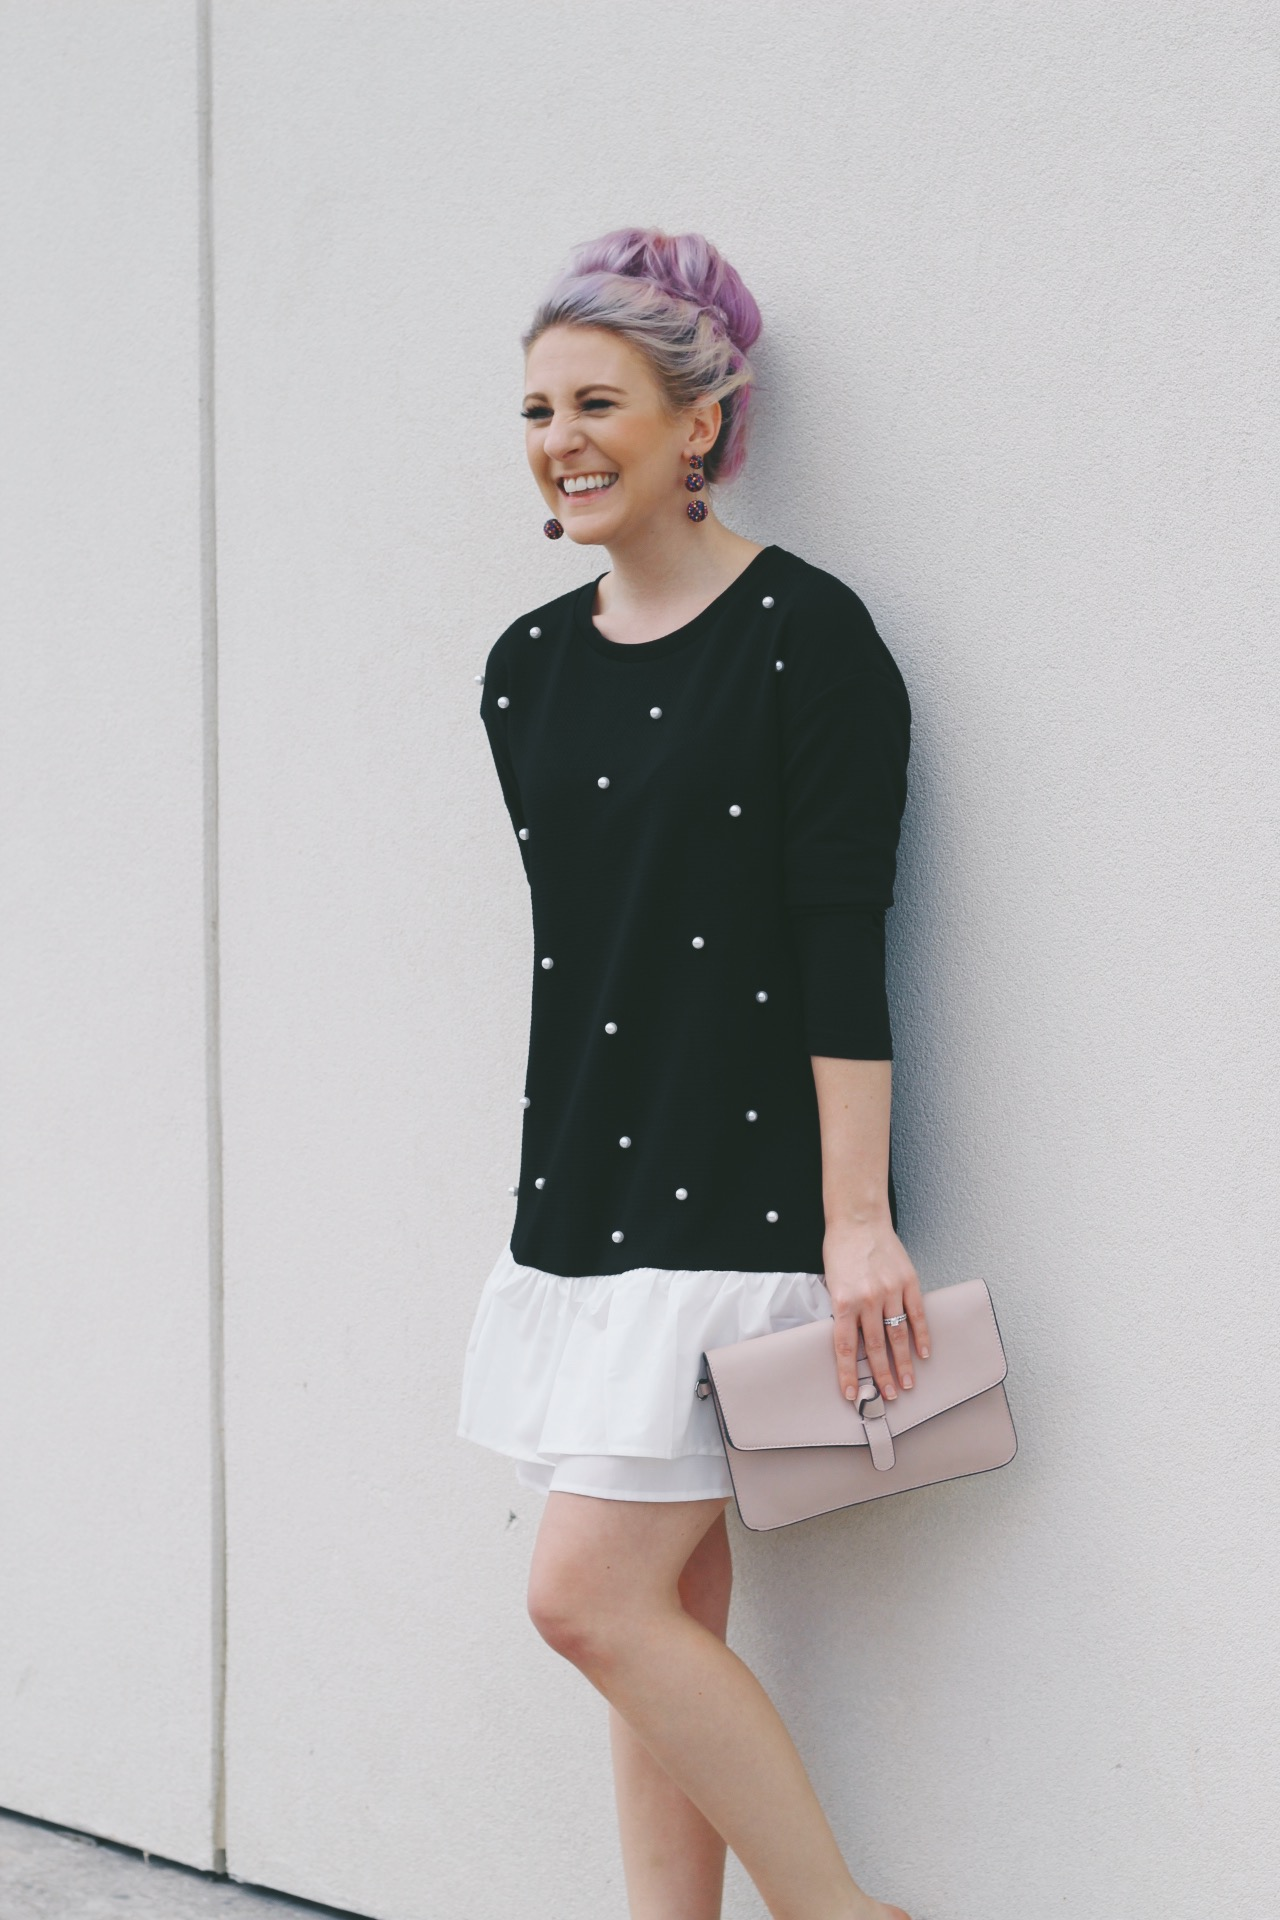 SheIn Pearl Dress by Houston fashion blogger Gracefully Sassy